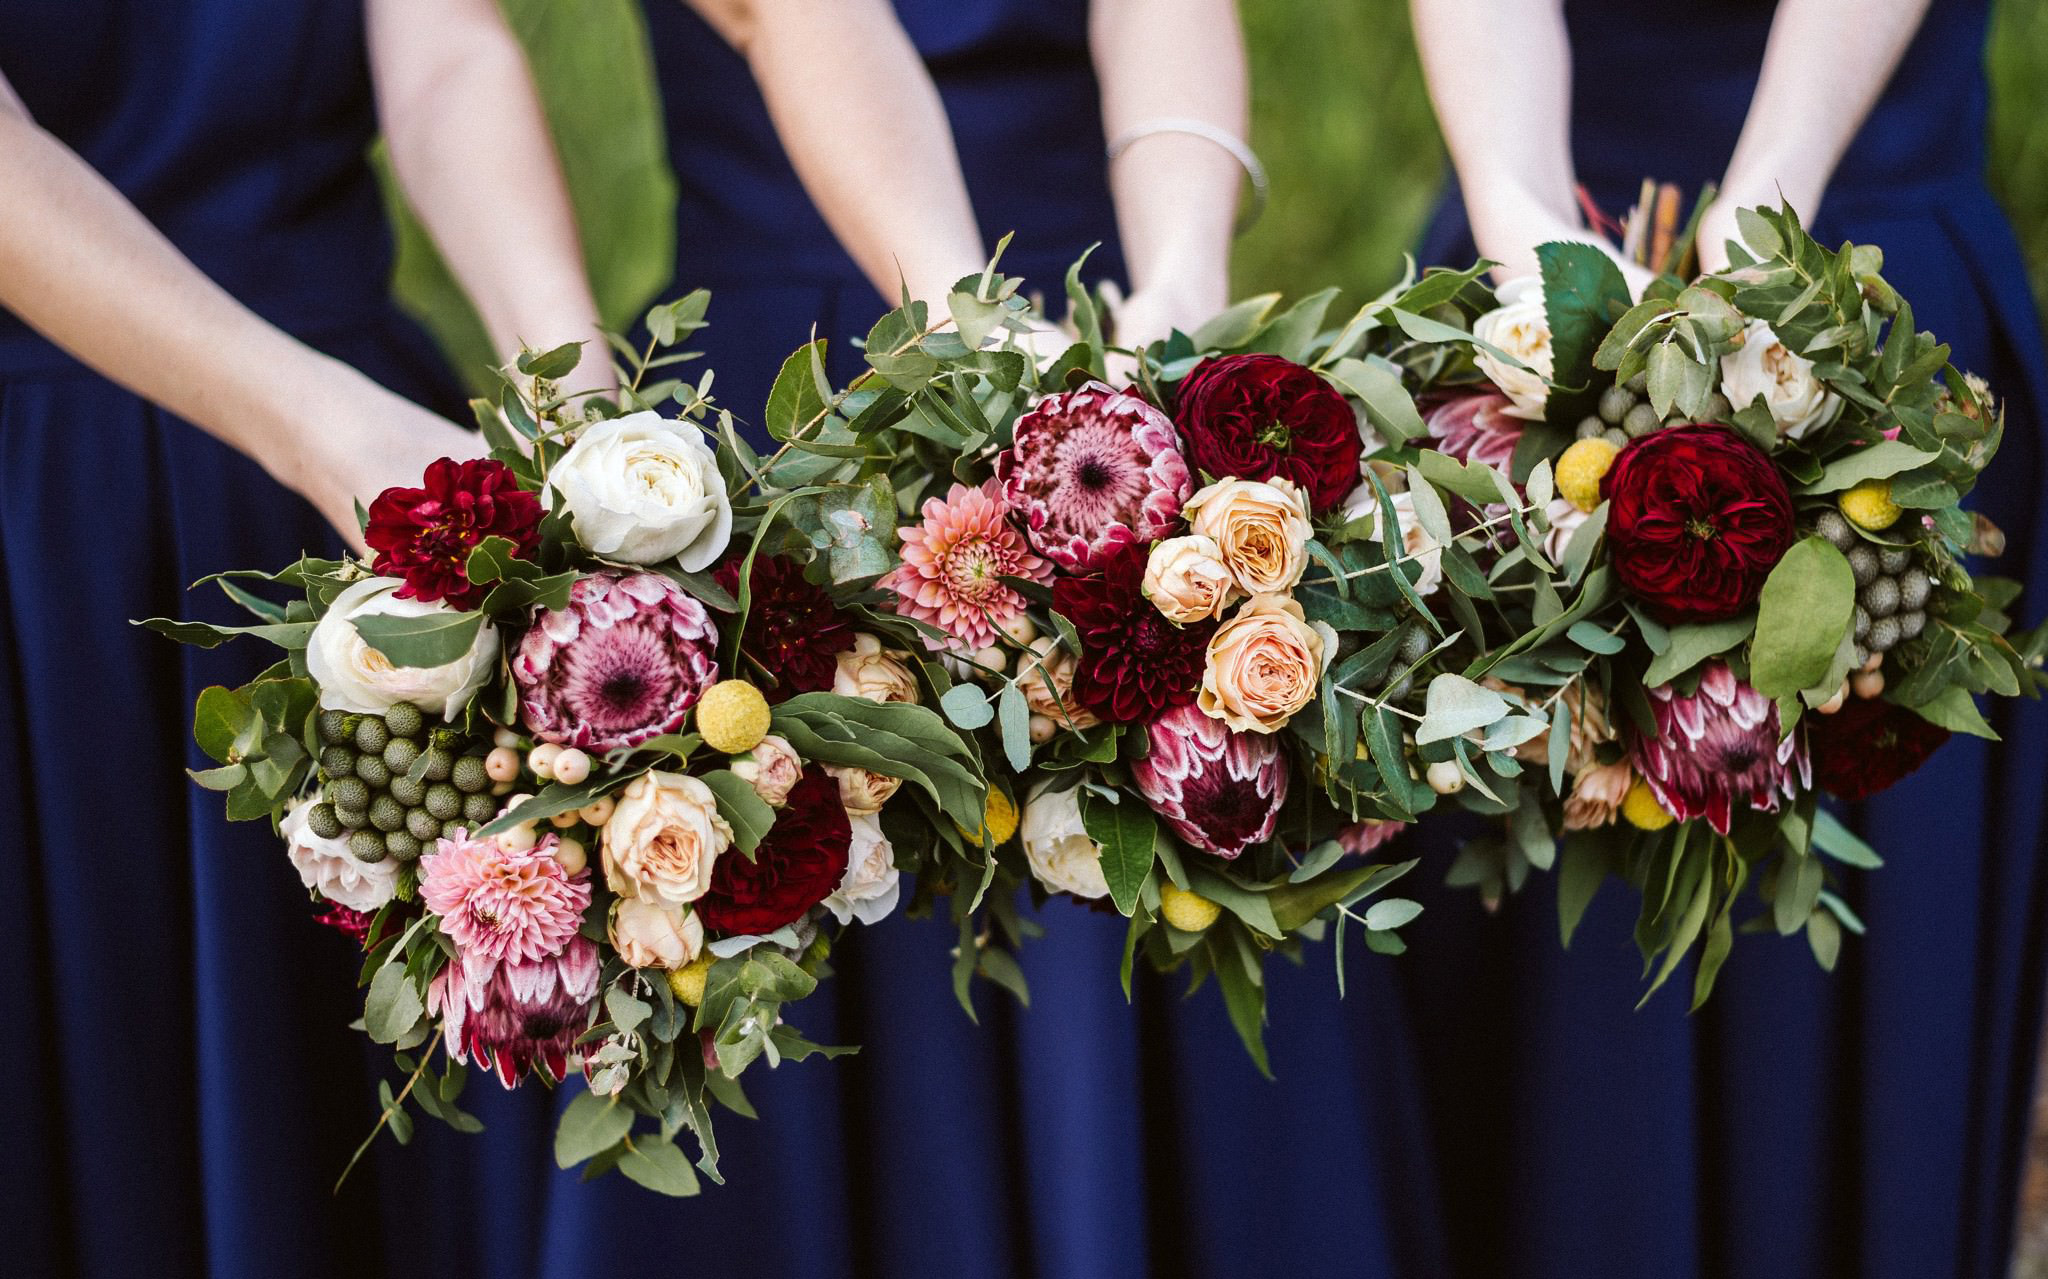 Wedding Bouquets in yellow, red and white flowers